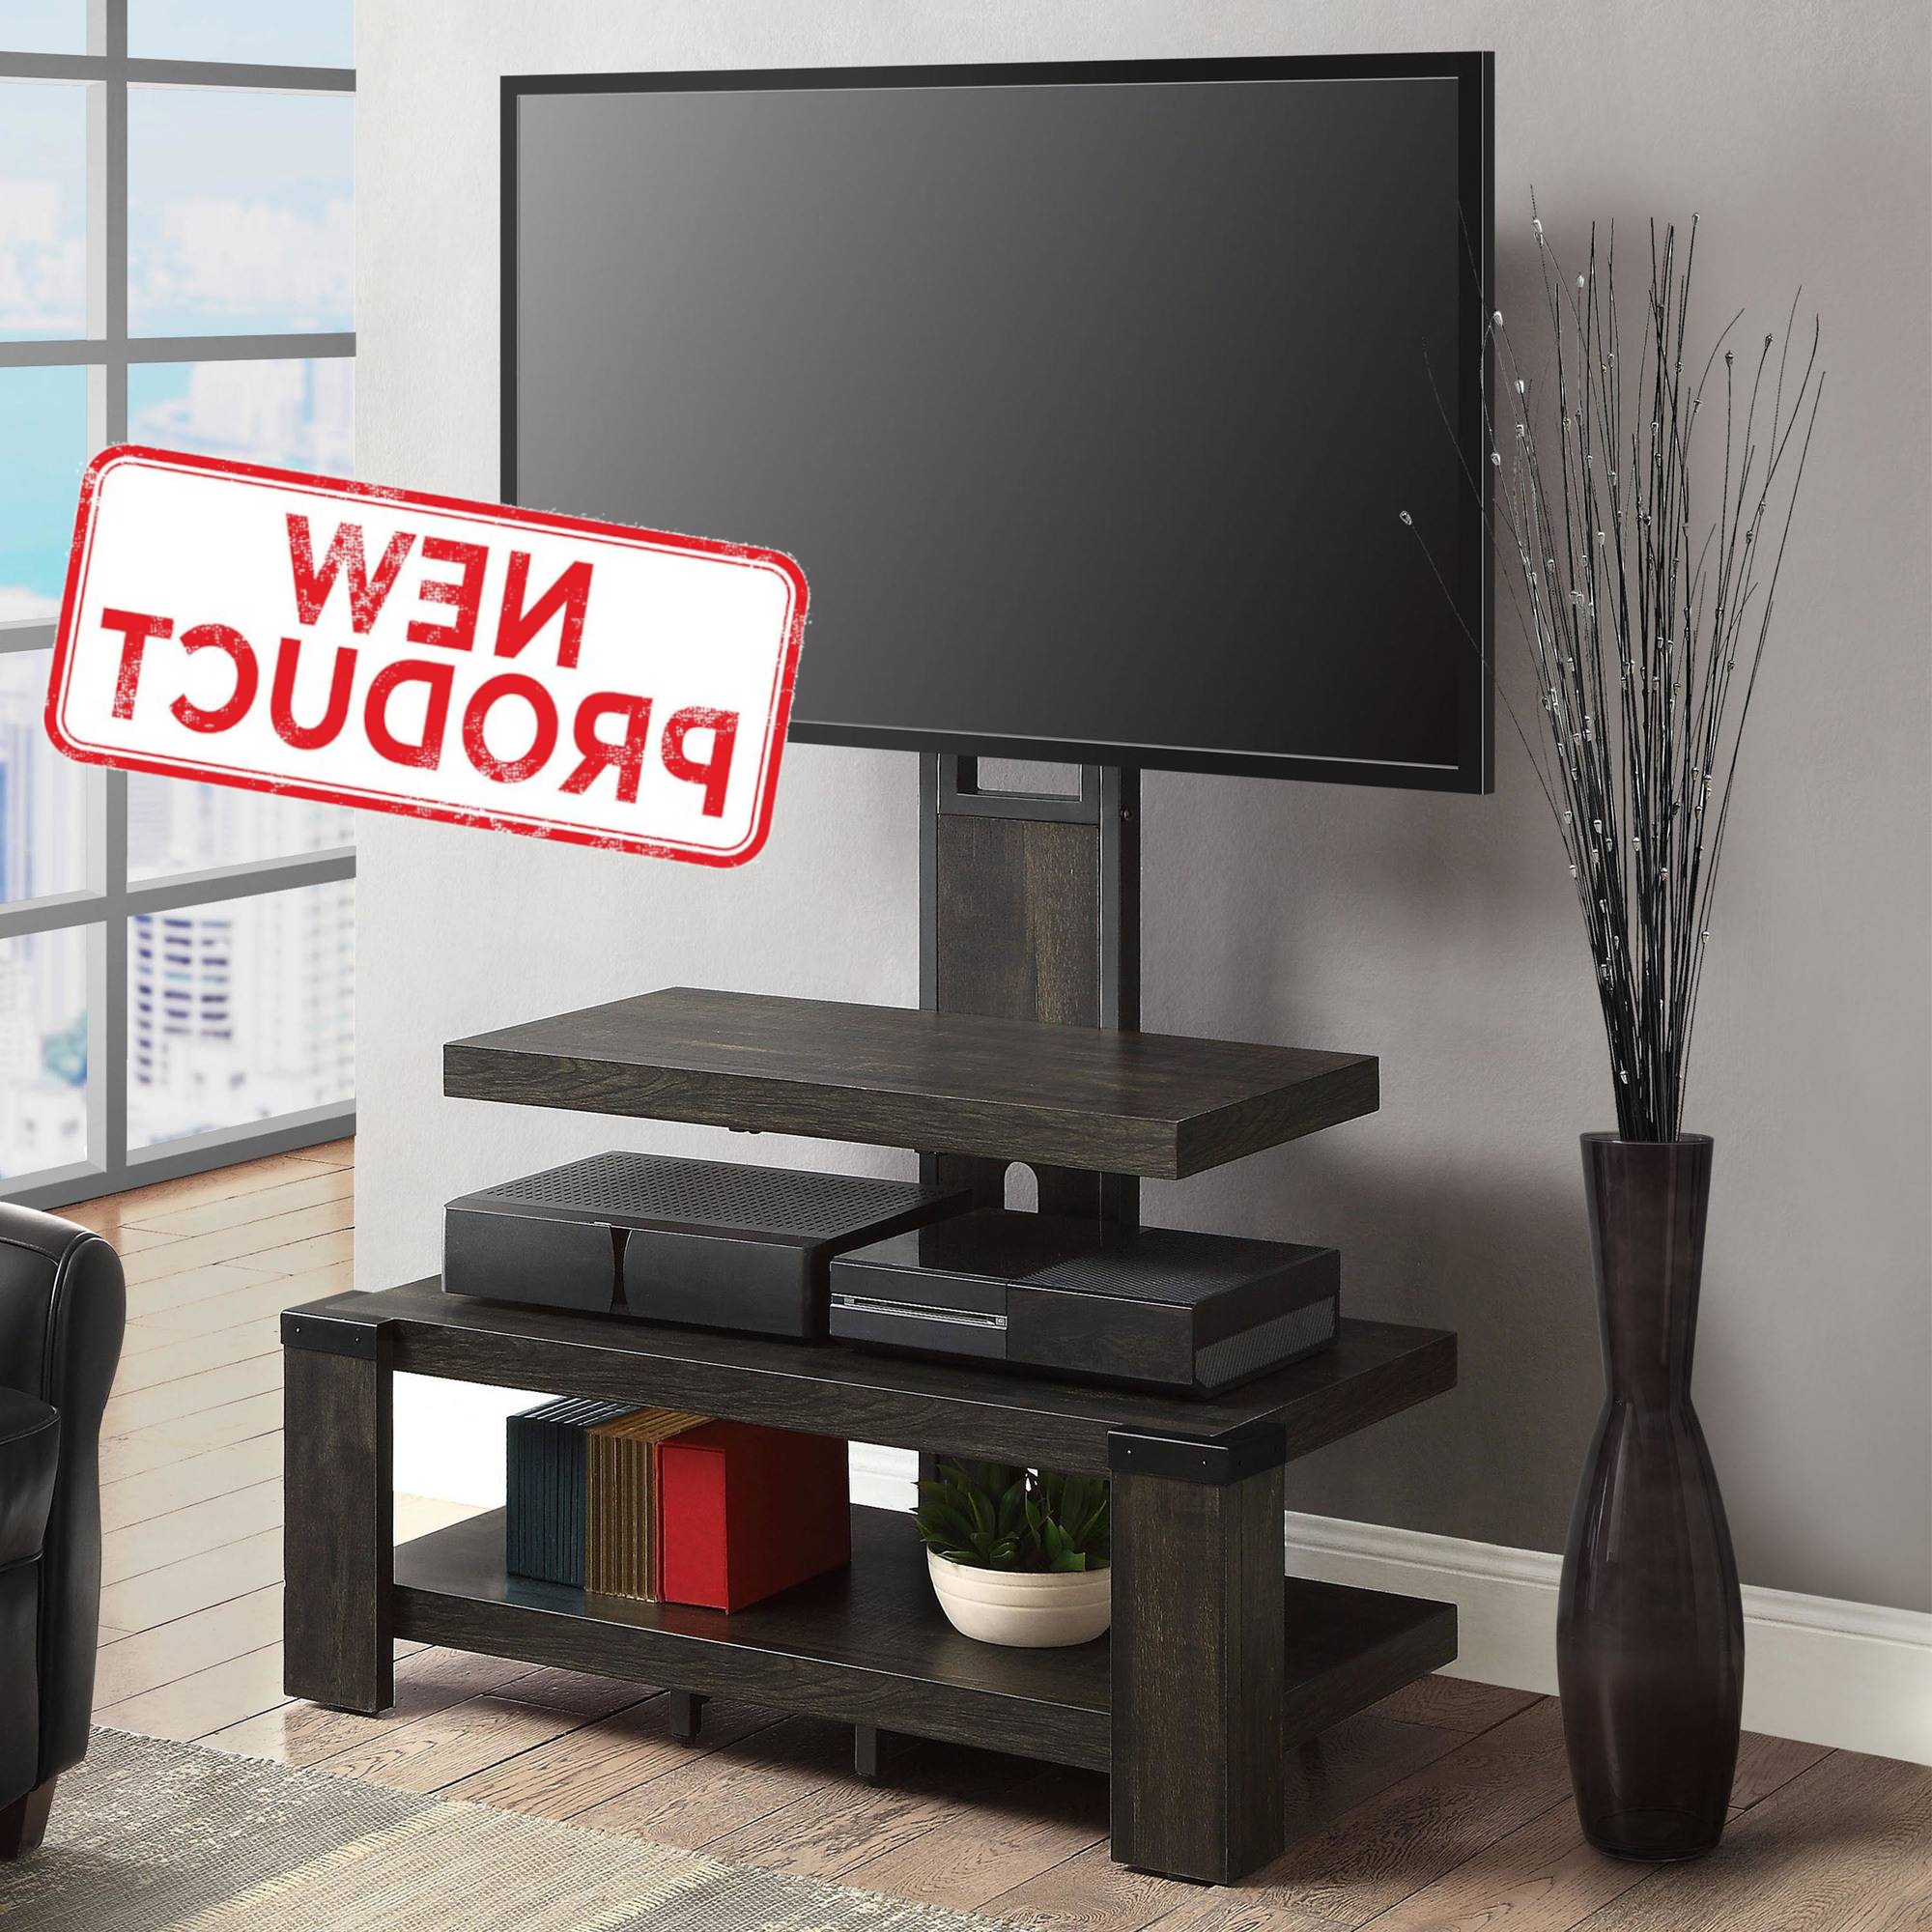 3 Shelf Tv Stand W/ Floater Mount Flat 55 Inch Media Within Whalen Shelf Tv Stands With Floater Mount In Weathered Dark Pine Finish (View 1 of 20)